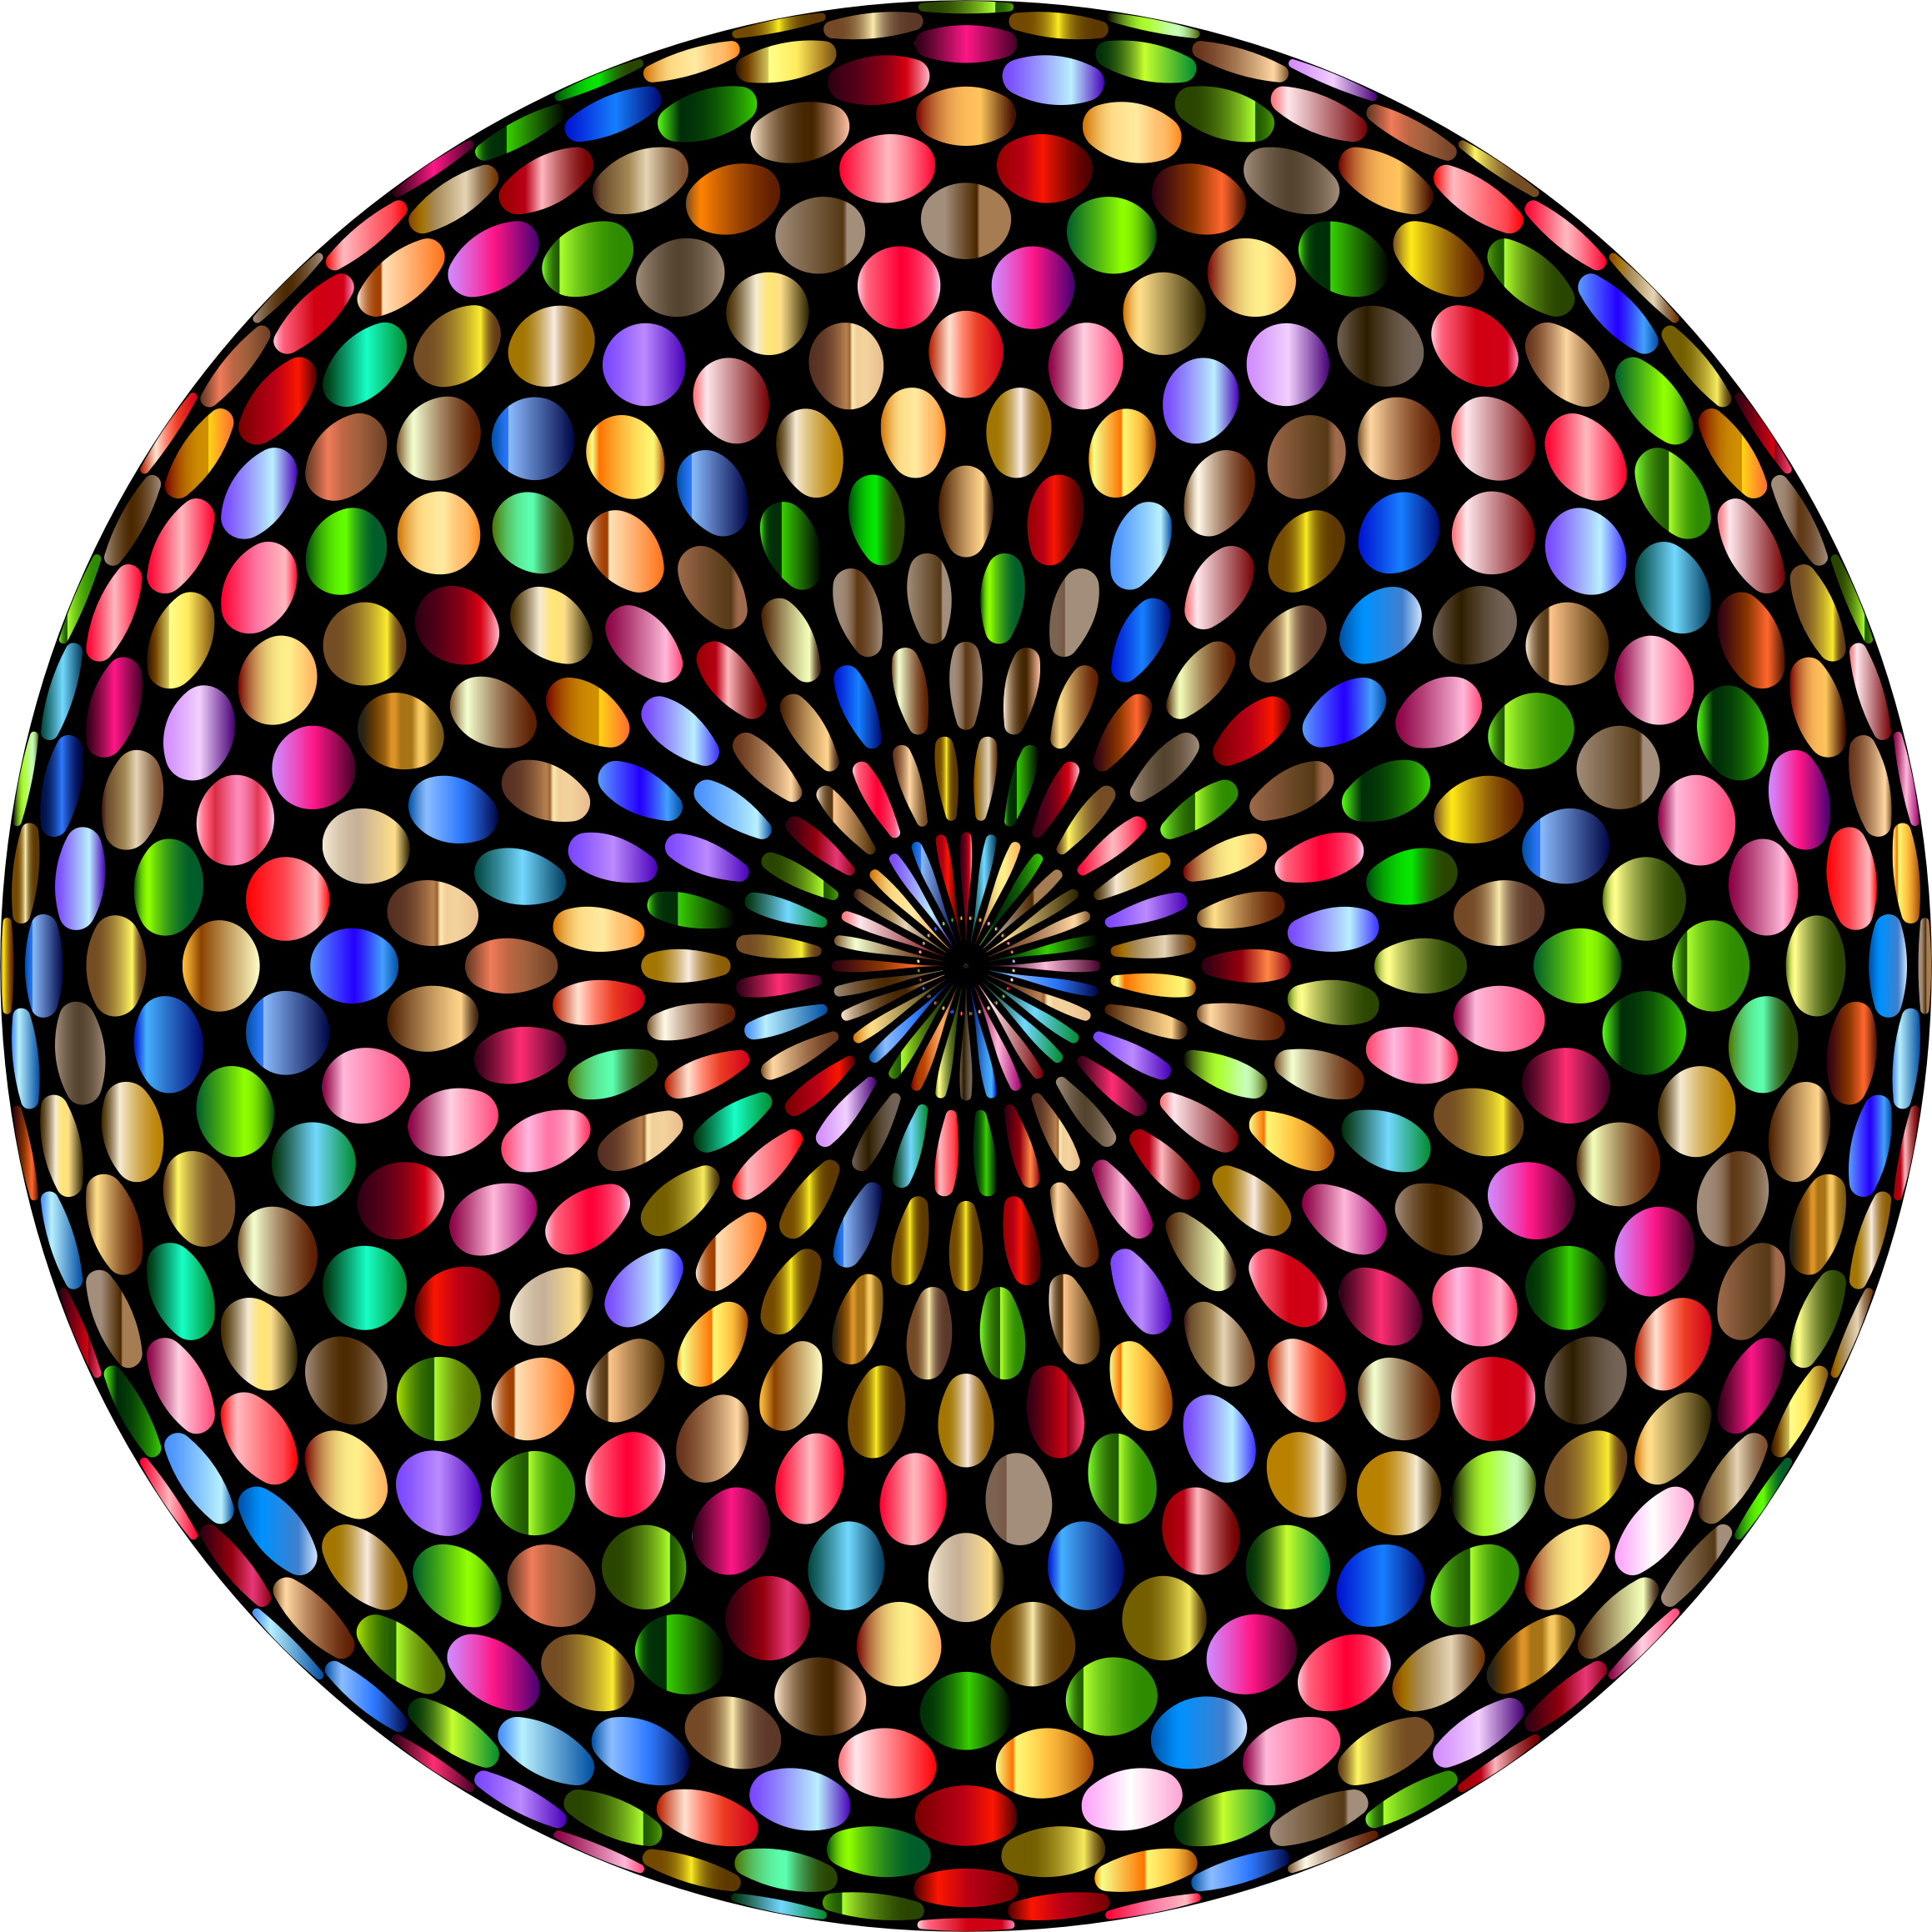 image Clipart chromatic disco ball. Psychedelic vector.